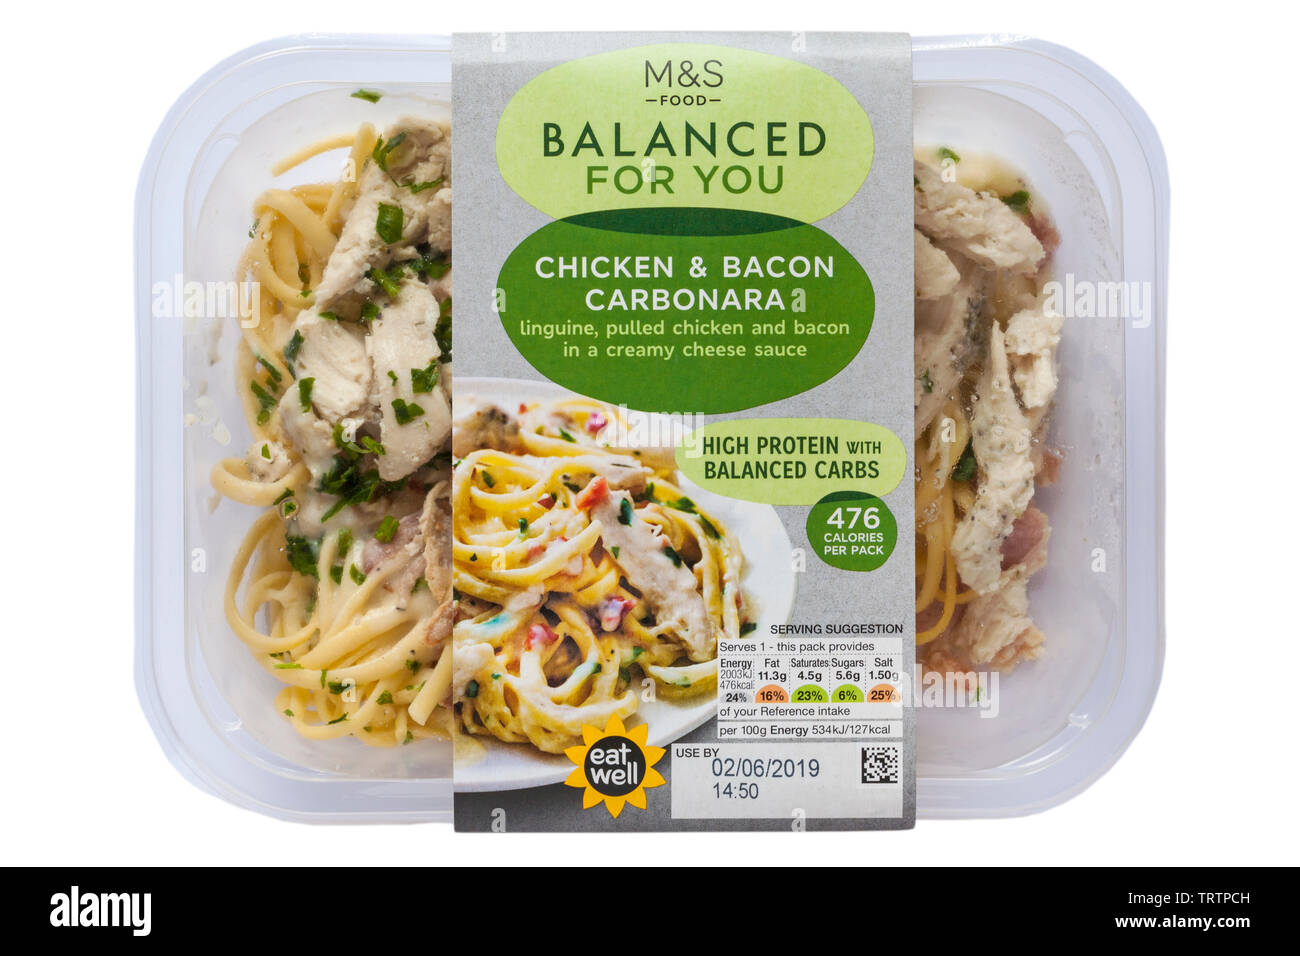 Pack of Chicken & Bacon Carbonara M&S Food Balanced for You isolated on white background - linguine pulled chicken and bacon in a creamy cheese sauce - Stock Image